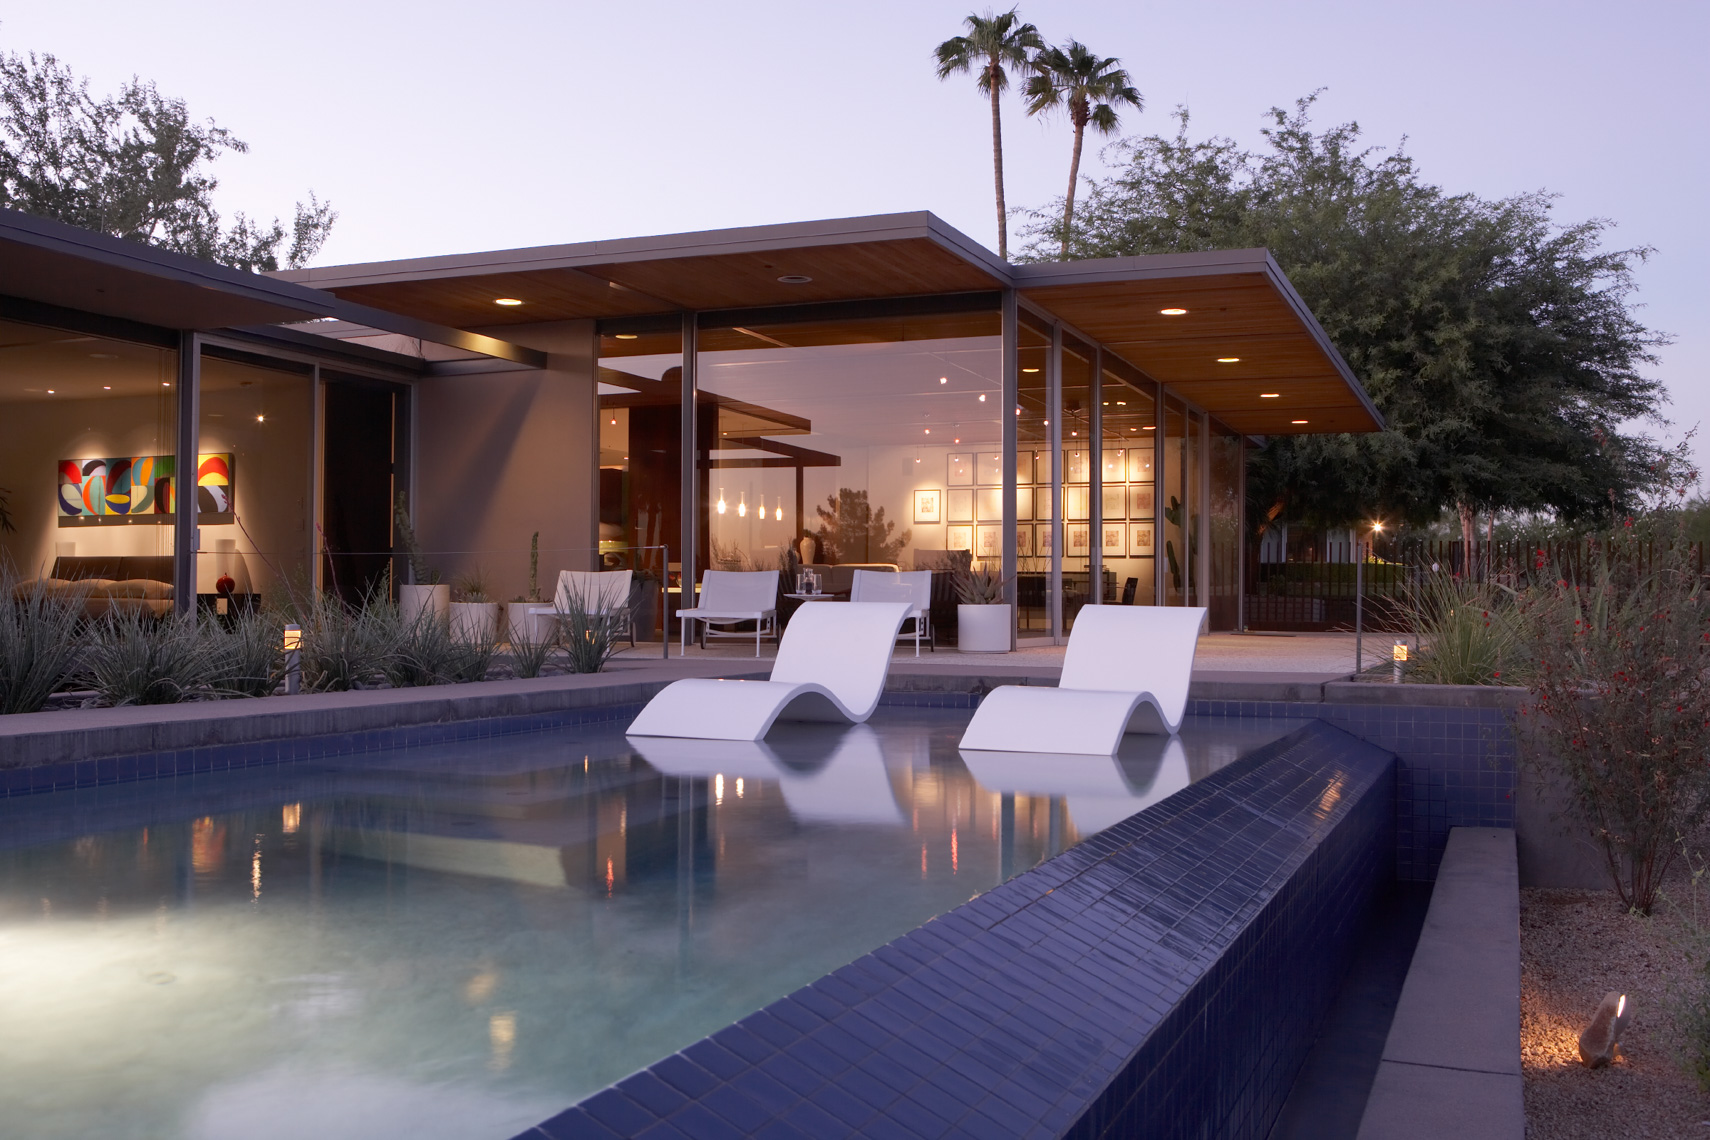 White modern chairs in blue pool at dusk in the desert with modern home and palm trees behind